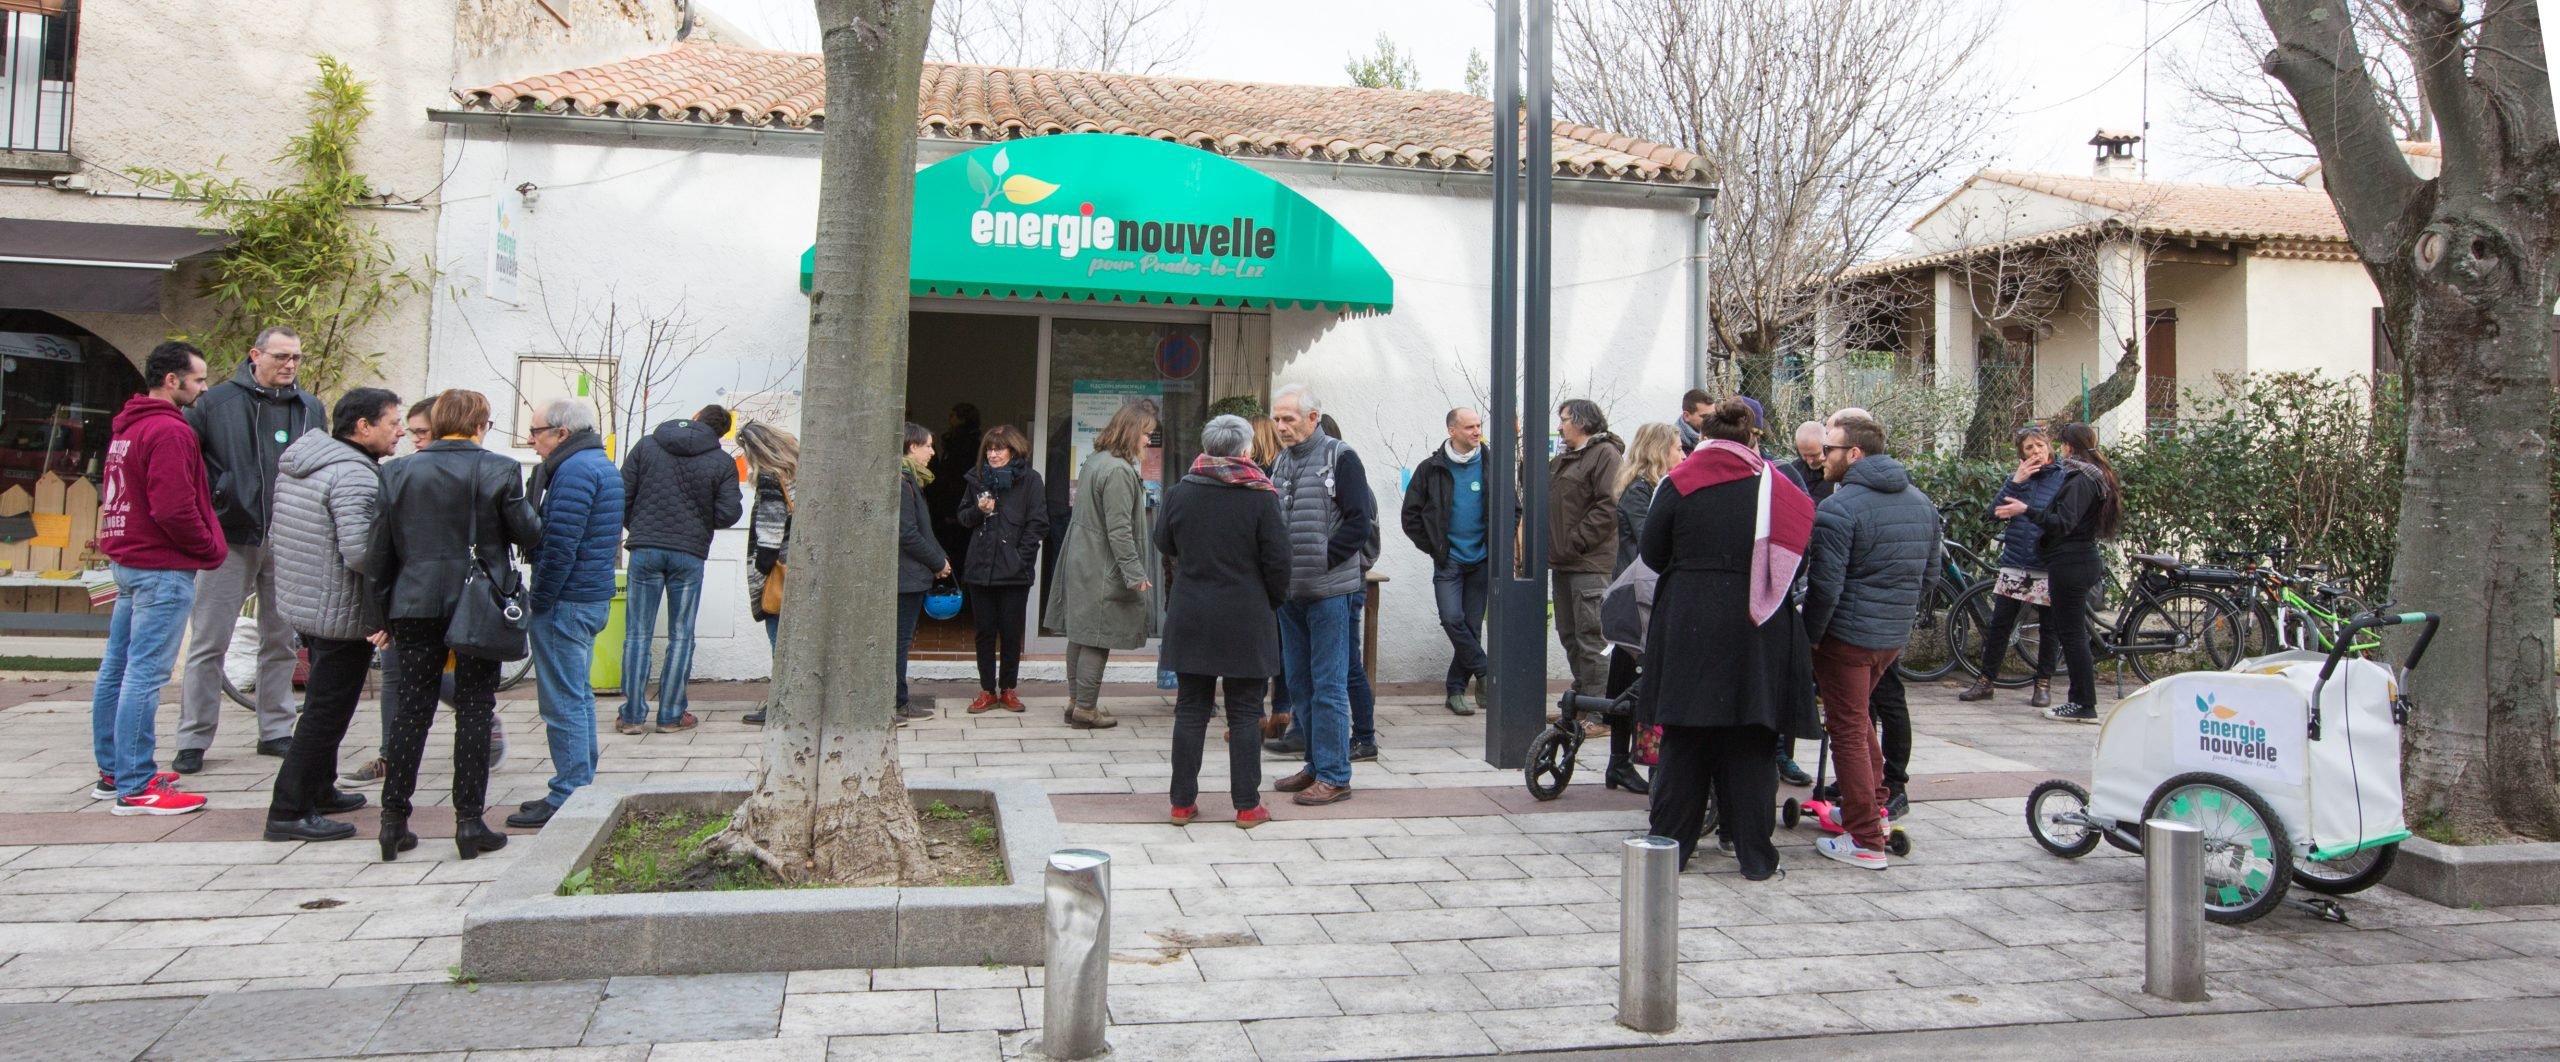 Inauguration local de campagne Energie nouvelle